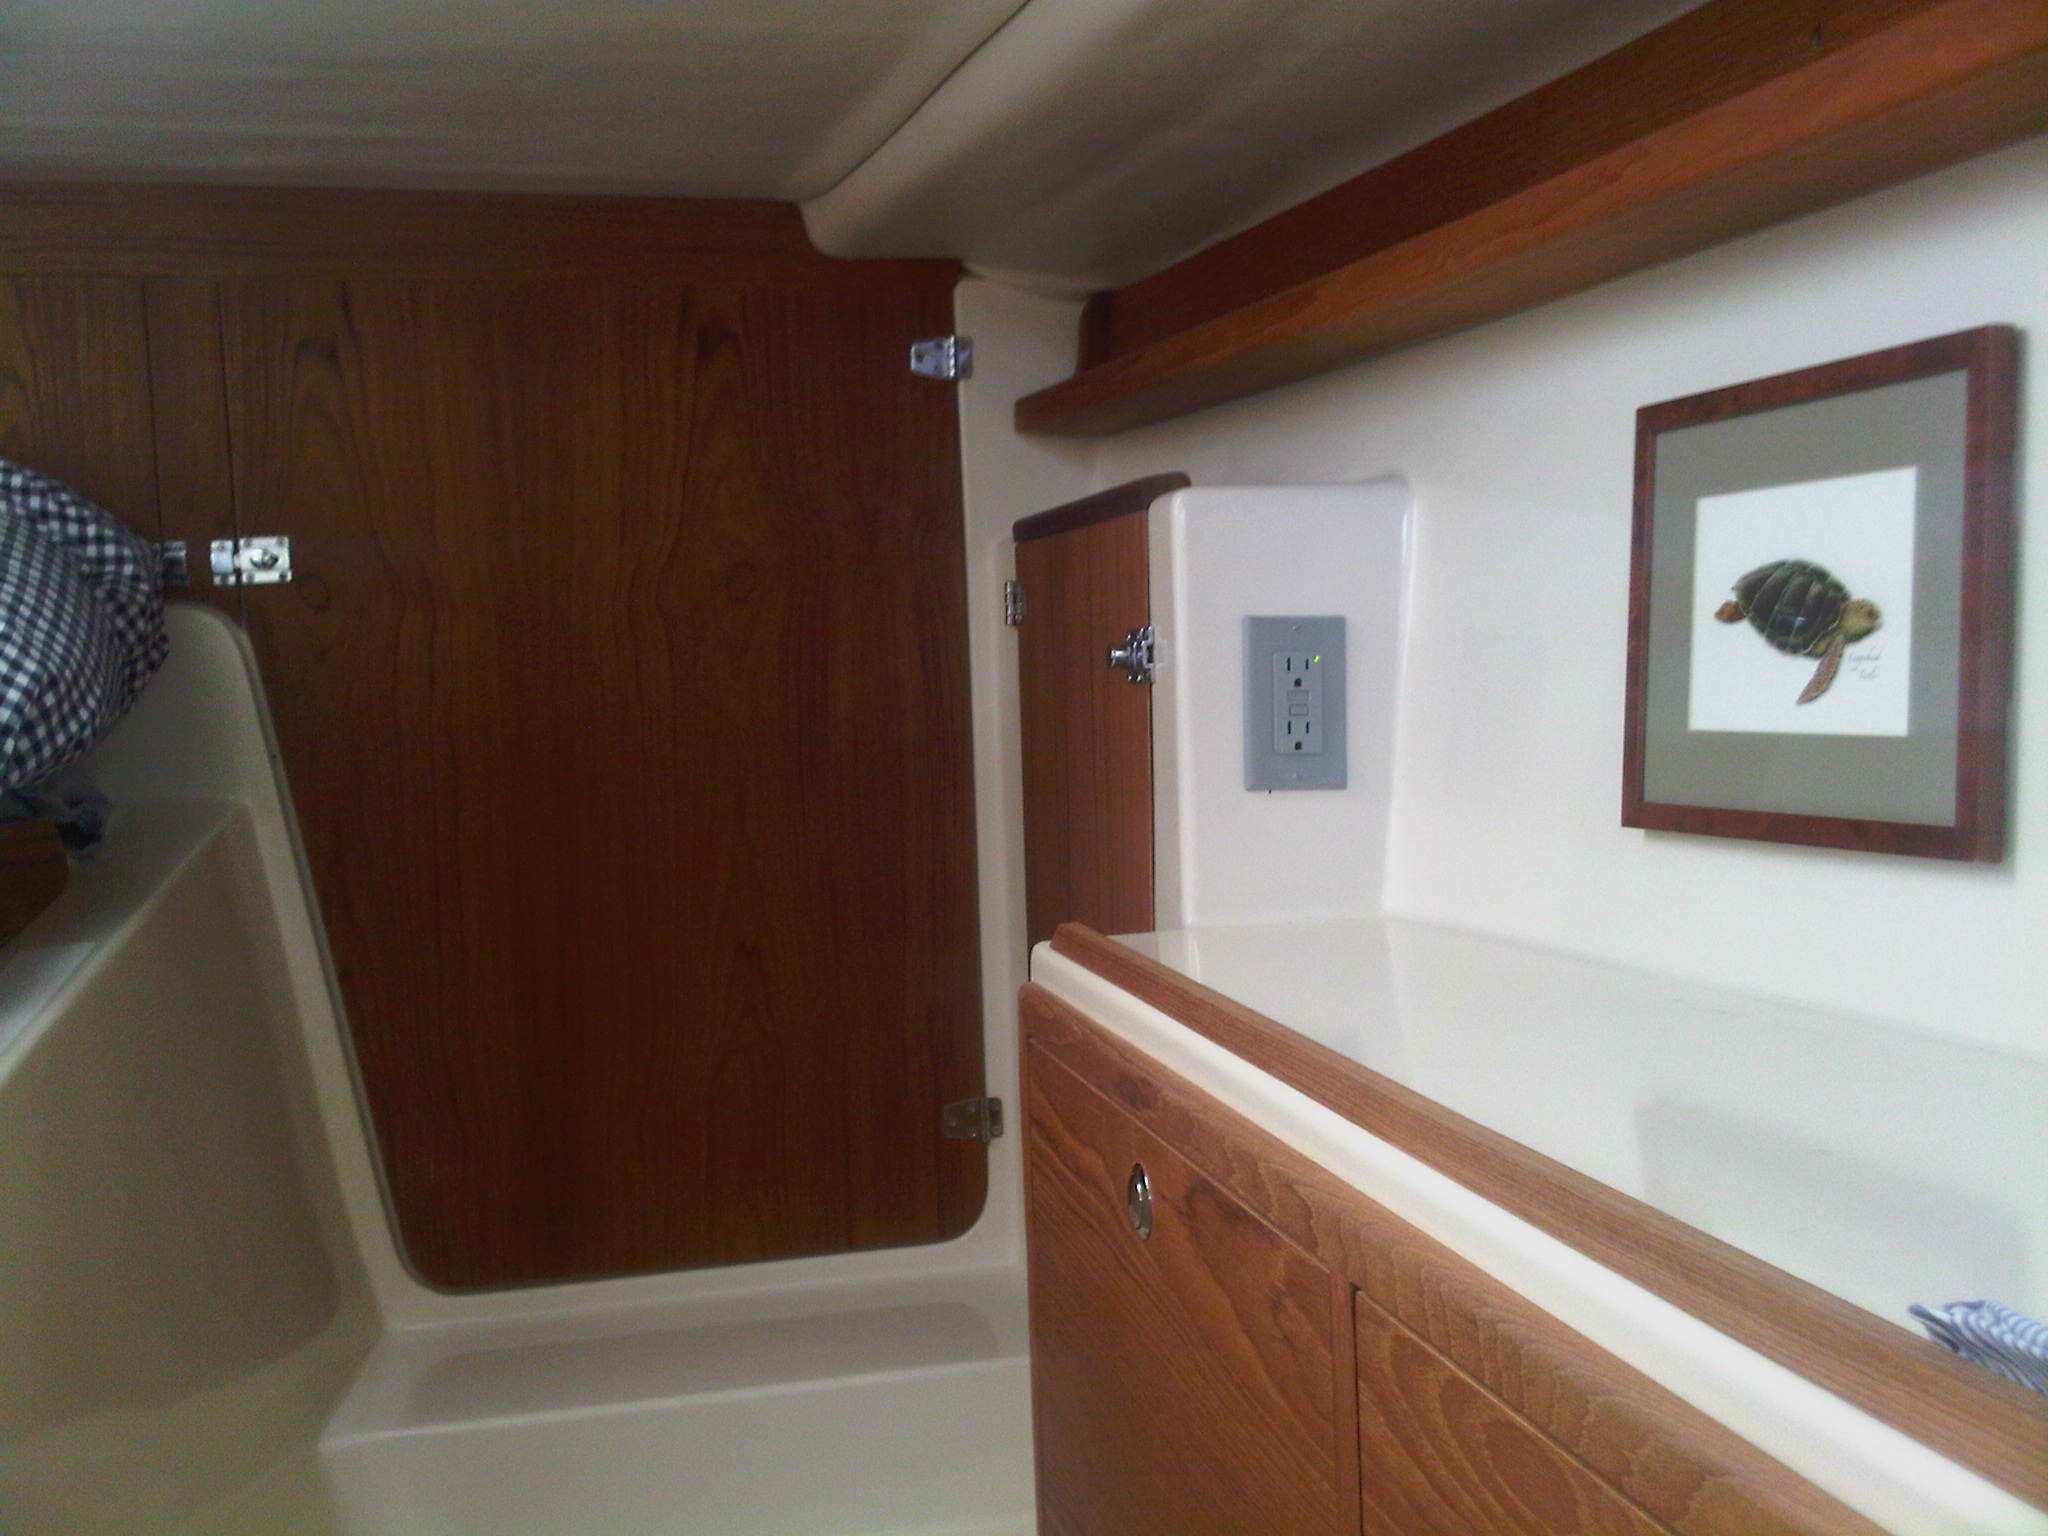 Preowned Sail Catamarans for Sale 2010 Gemini 105Mc Layout & Accommodations